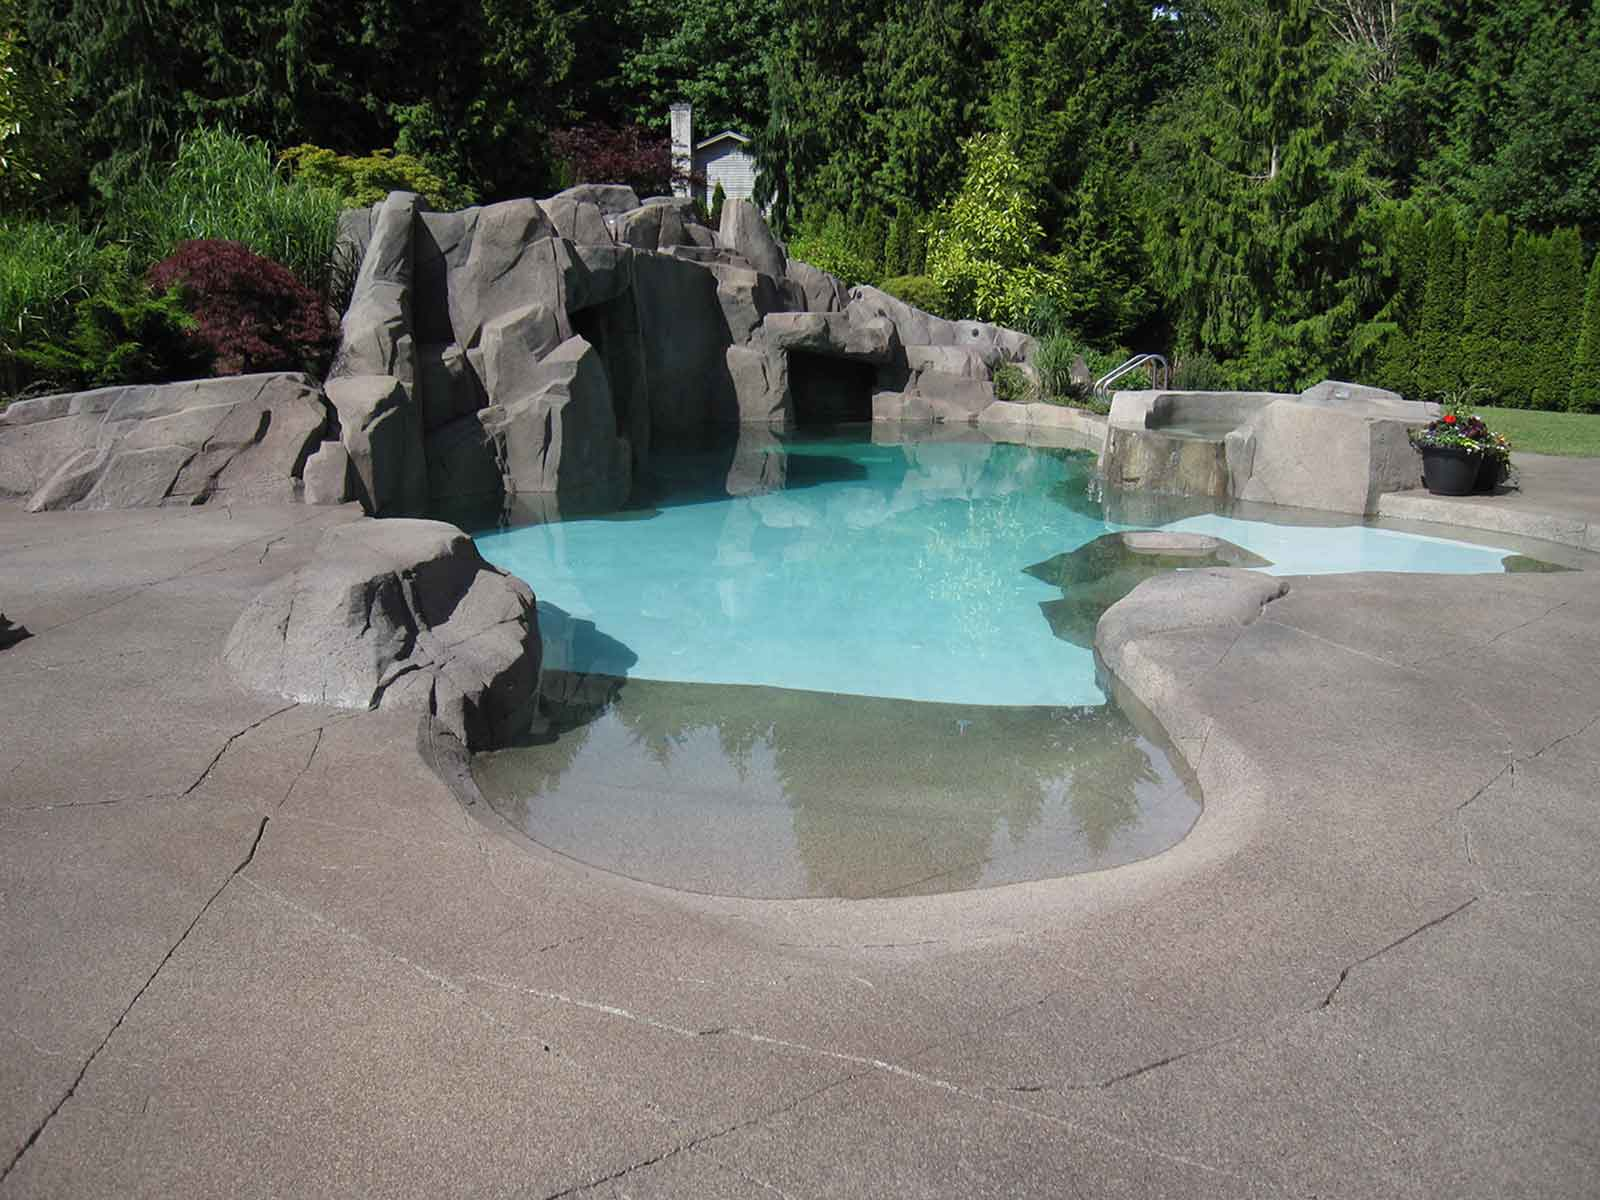 Outdoor swimming pool with artificial rock wall and large patio